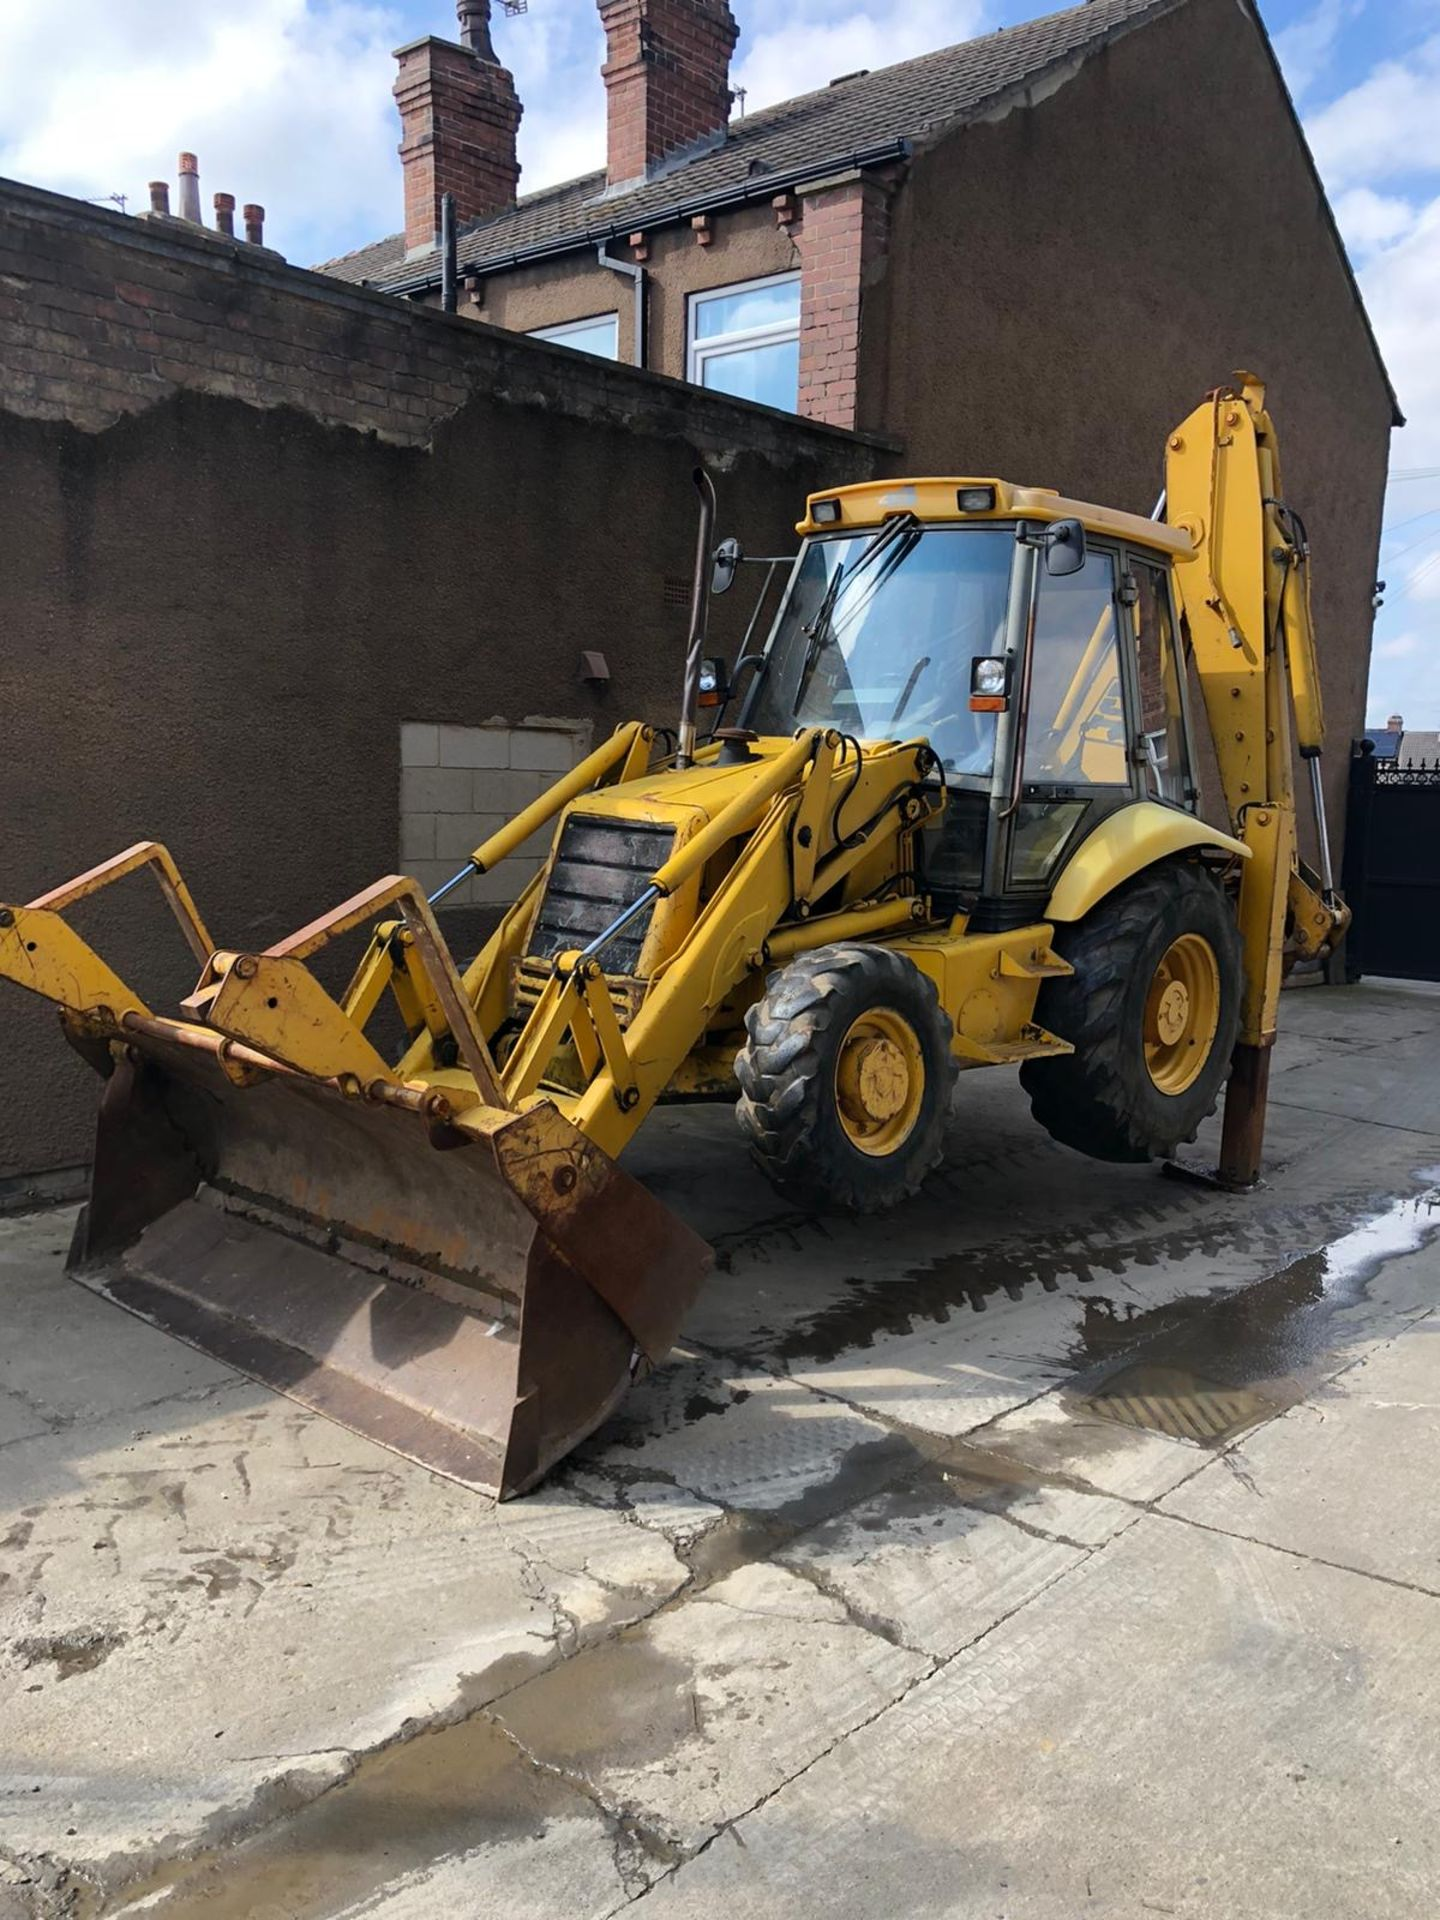 JCB 3CX PROJECT 8 DIGGER, 4X4, EXTRA DIG, C/W 3 BUCKETS, HOURS FROM NEW 7434 ONLY *NO VAT* - Image 14 of 16